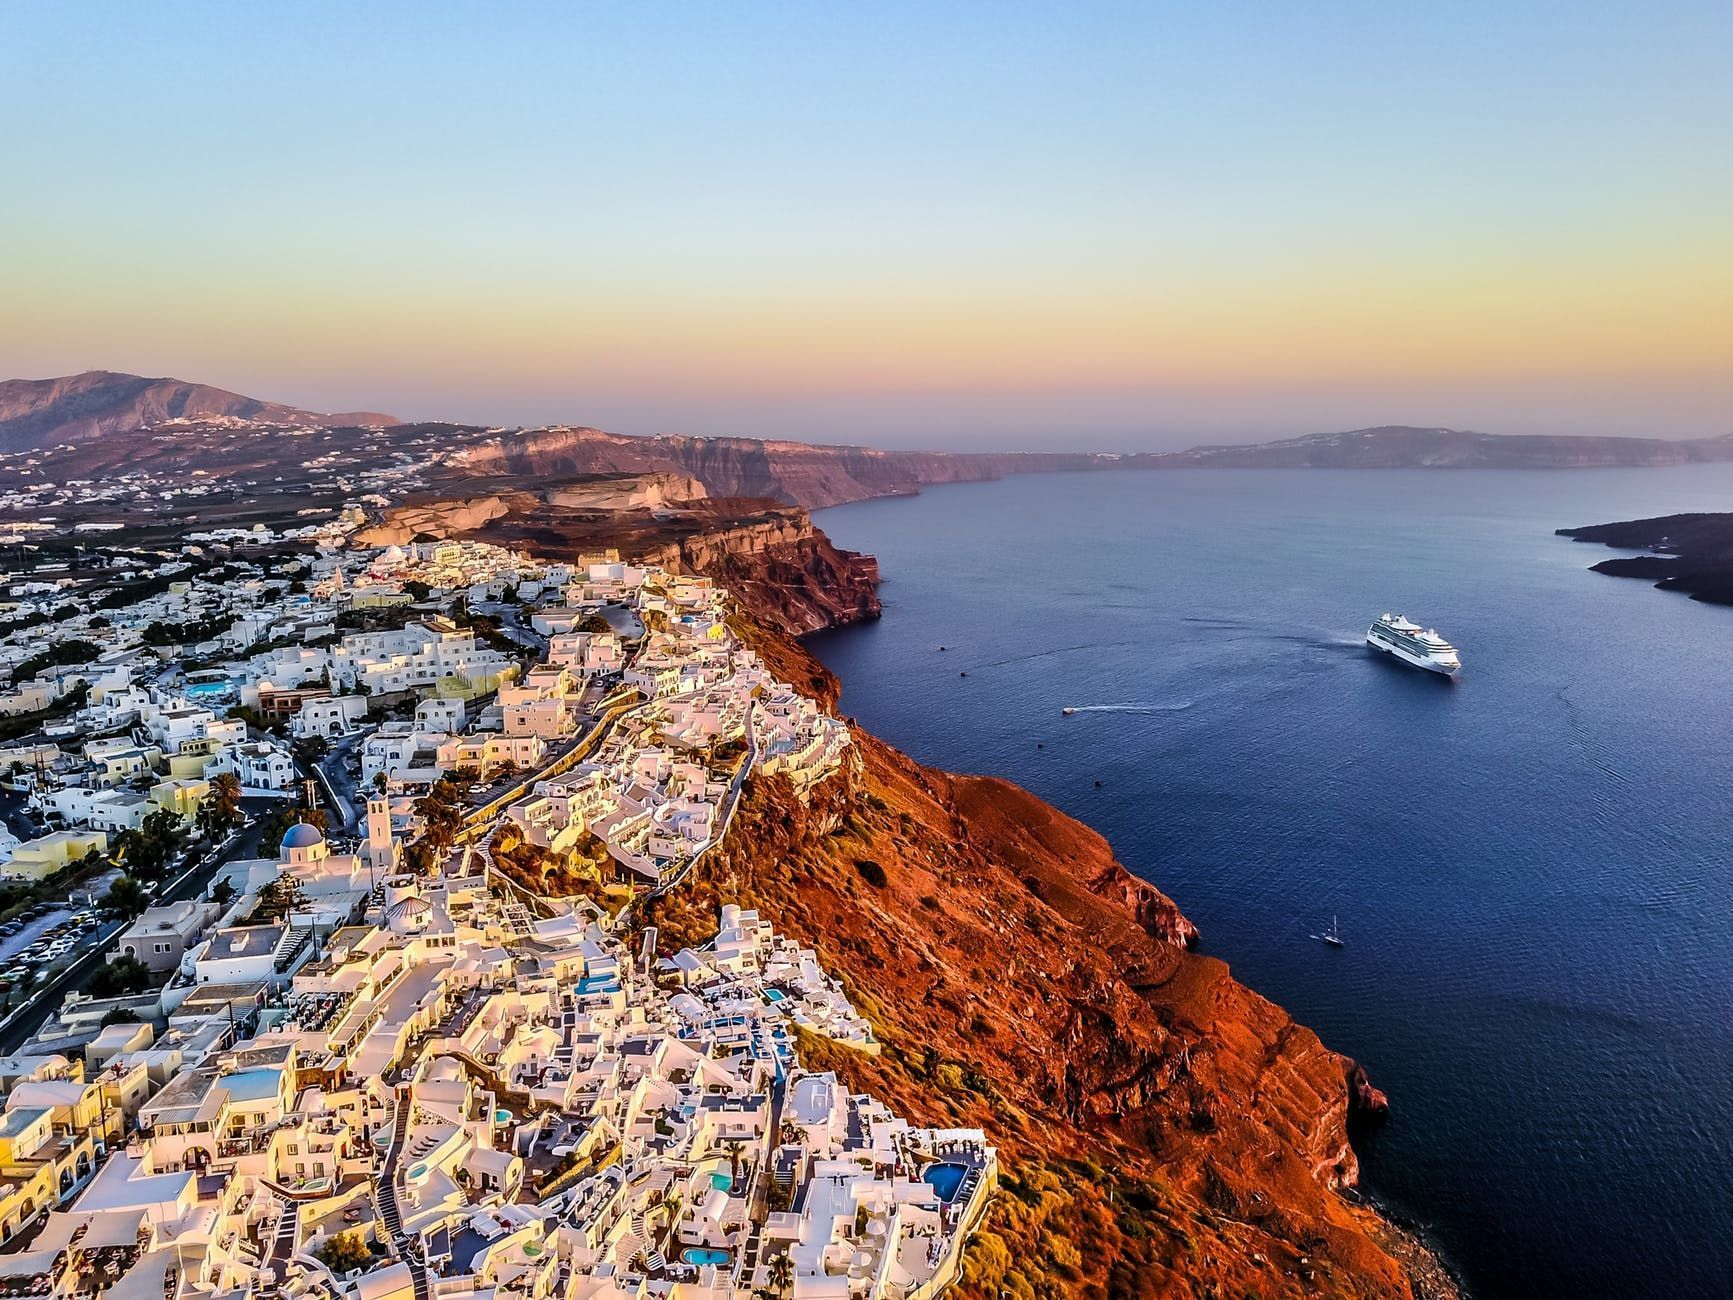 Some tips about ferries and cruises through the Greek Islands